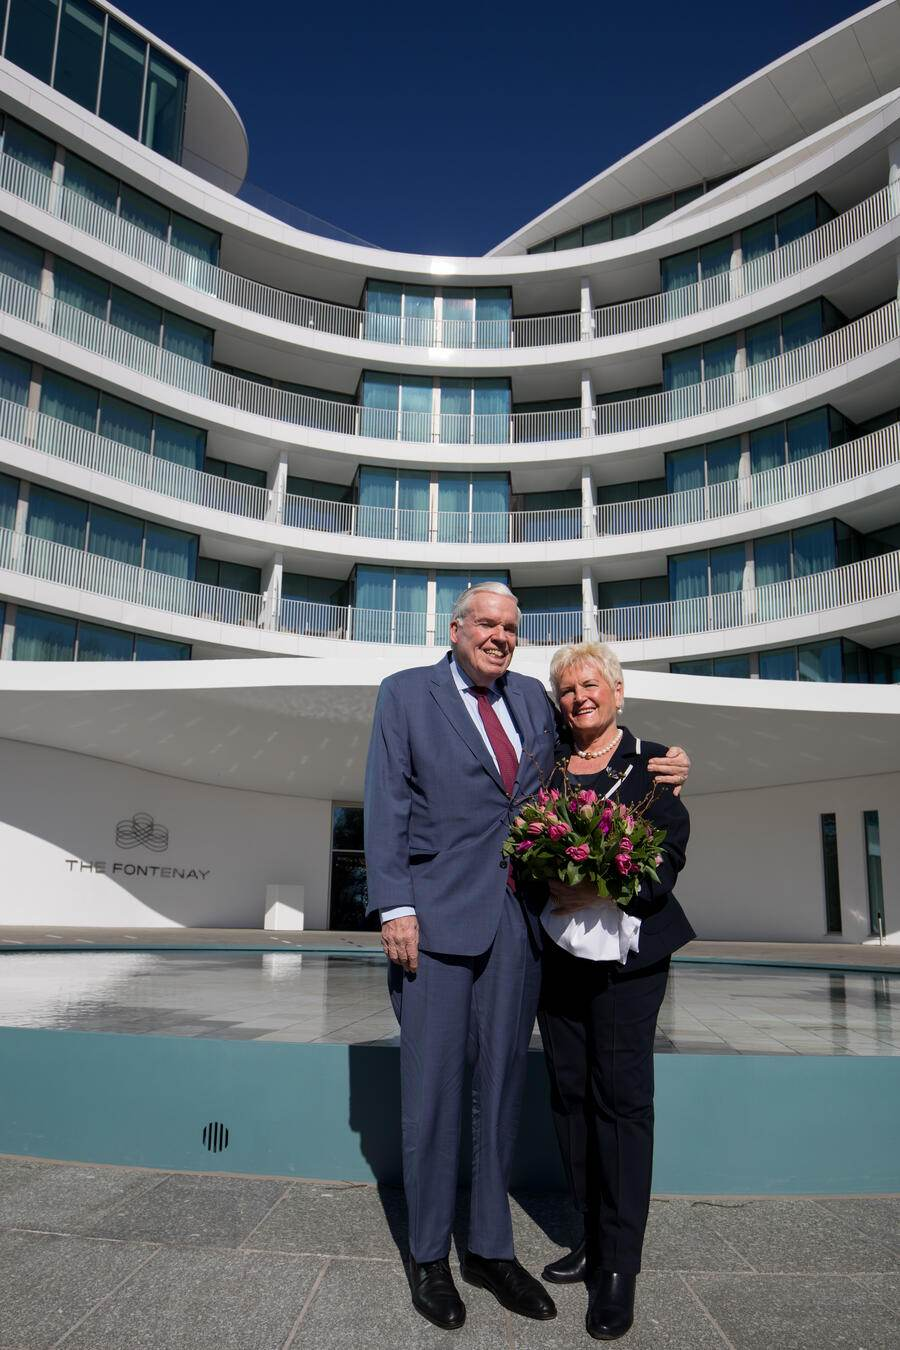 19 March 2018, Germany, Hamburg: Logistics billionaire and Hamburger SV investor Klaus Michael Kuehne and his wife Christine stand outside 'The Fontenay'. Kuehne gave a press conference to speak about the opening of the new hotel. Photo: Christian Charisius/dpa   Verwendung weltweit (KEYSTONE/DPA/Christian Charisius)